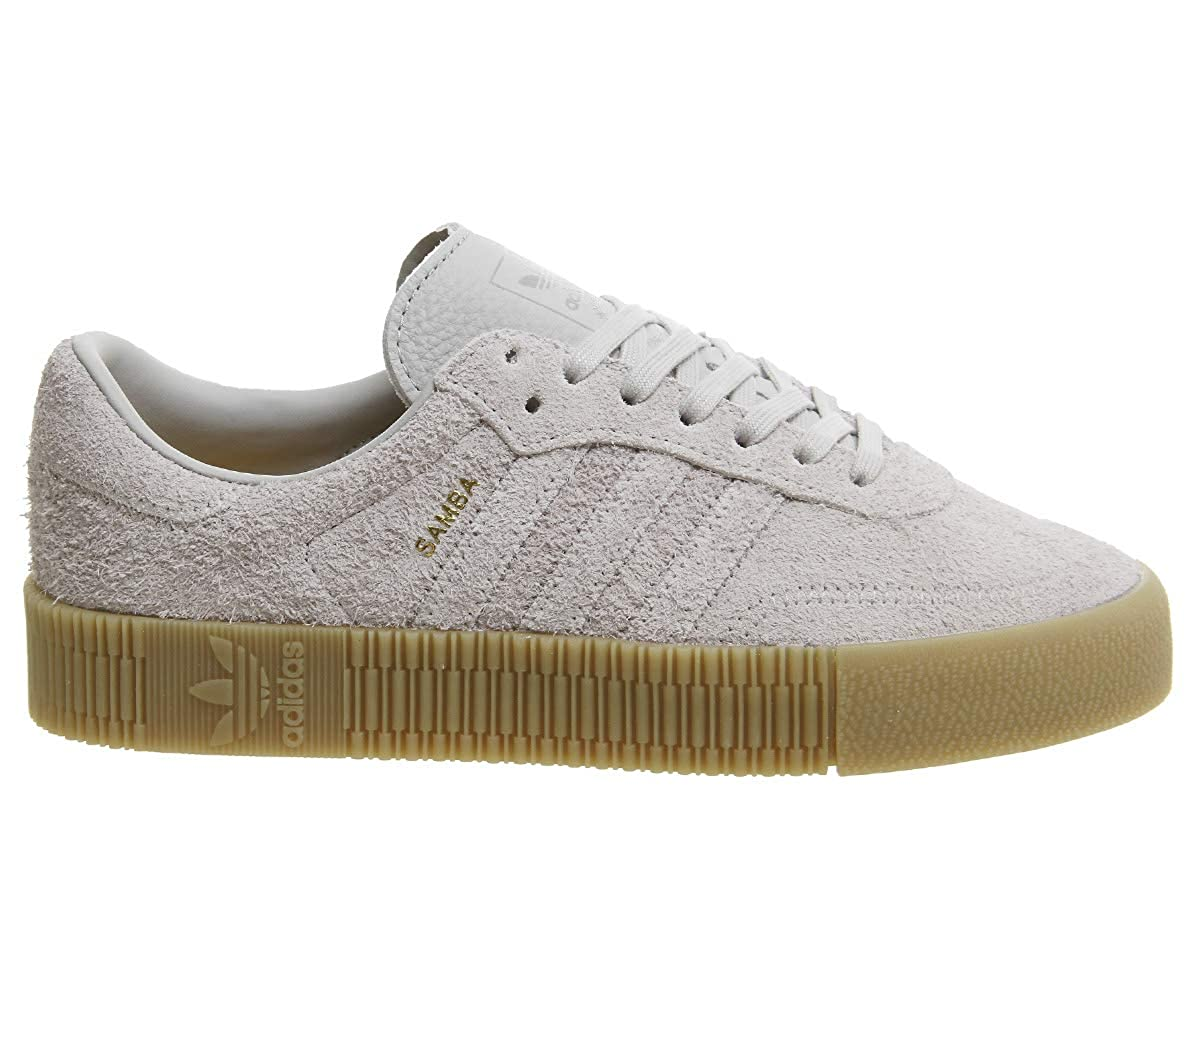 size 40 e7293 239e3 Amazon.com   adidas Originals Women s Sambarose Low Top Sneakers Grey in  Size US 7.5   Fashion Sneakers